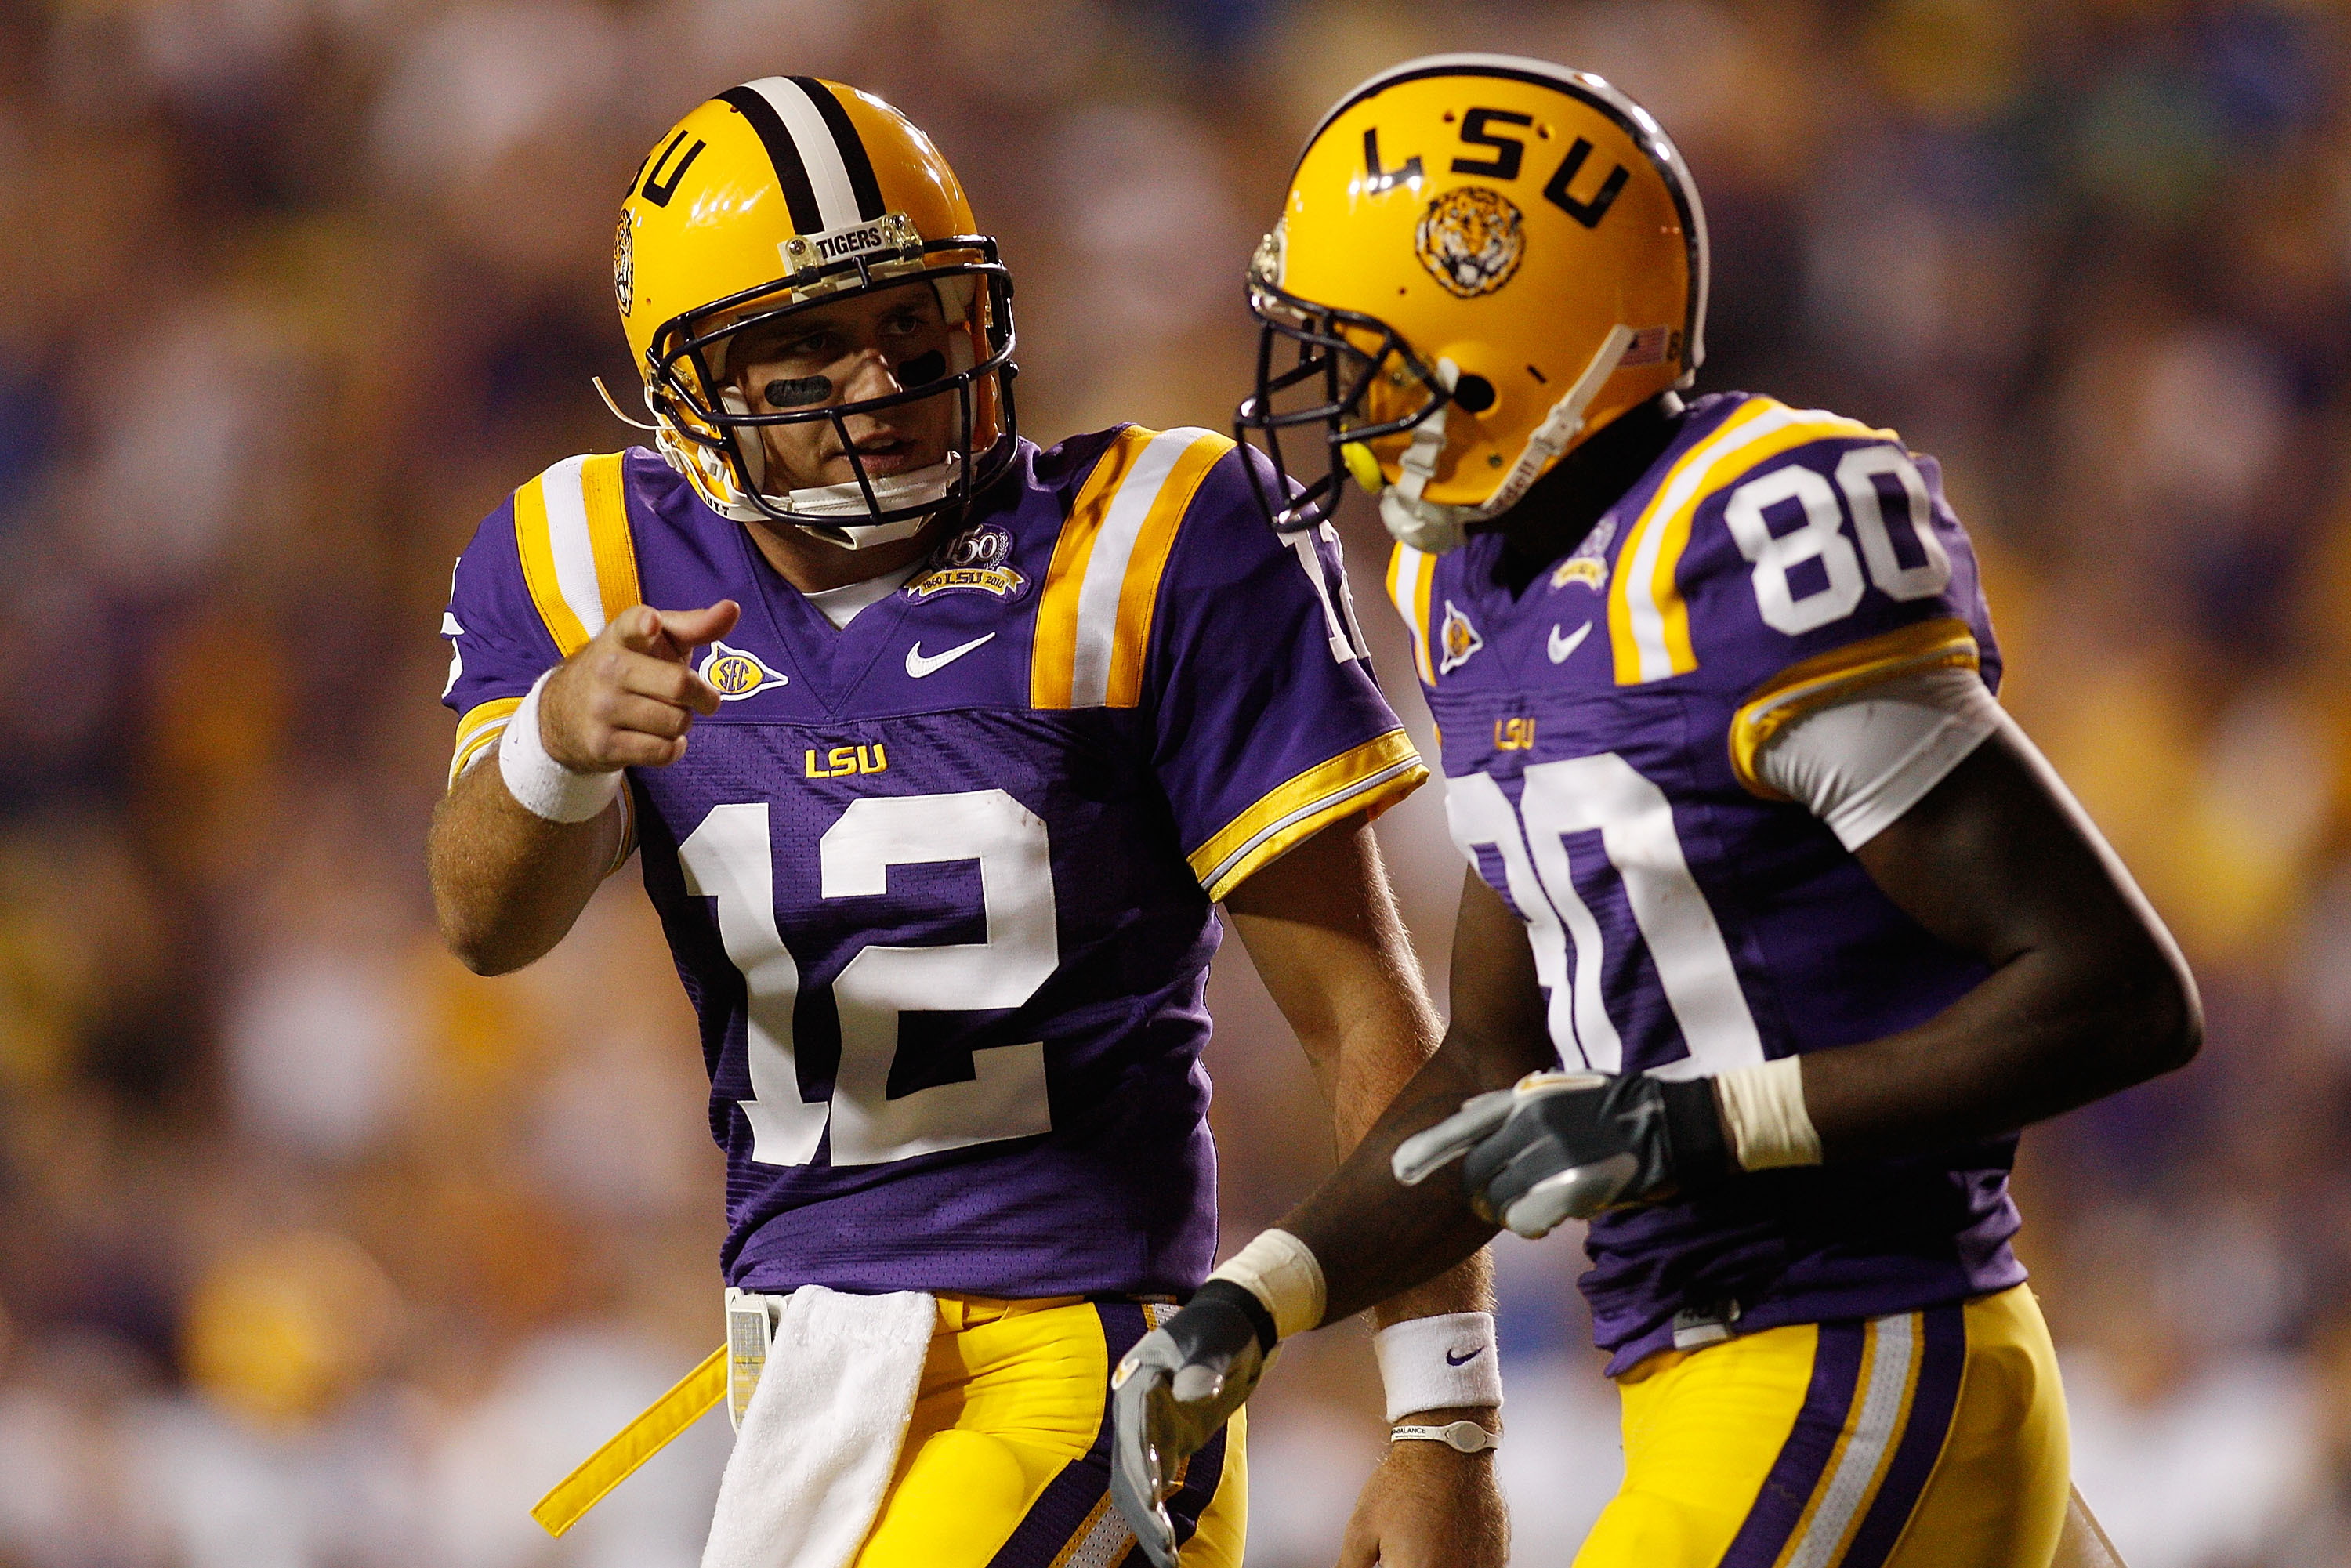 BATON ROUGE, LA - OCTOBER 16:  Jarrett Lee #12 talks with Terrence Toliver #80 of the Louisiana State University Tigers after a touchdown during the game against the McNeese State Cowboys at Tiger Stadium on October 16, 2010 in Baton Rouge, Louisiana.  (P